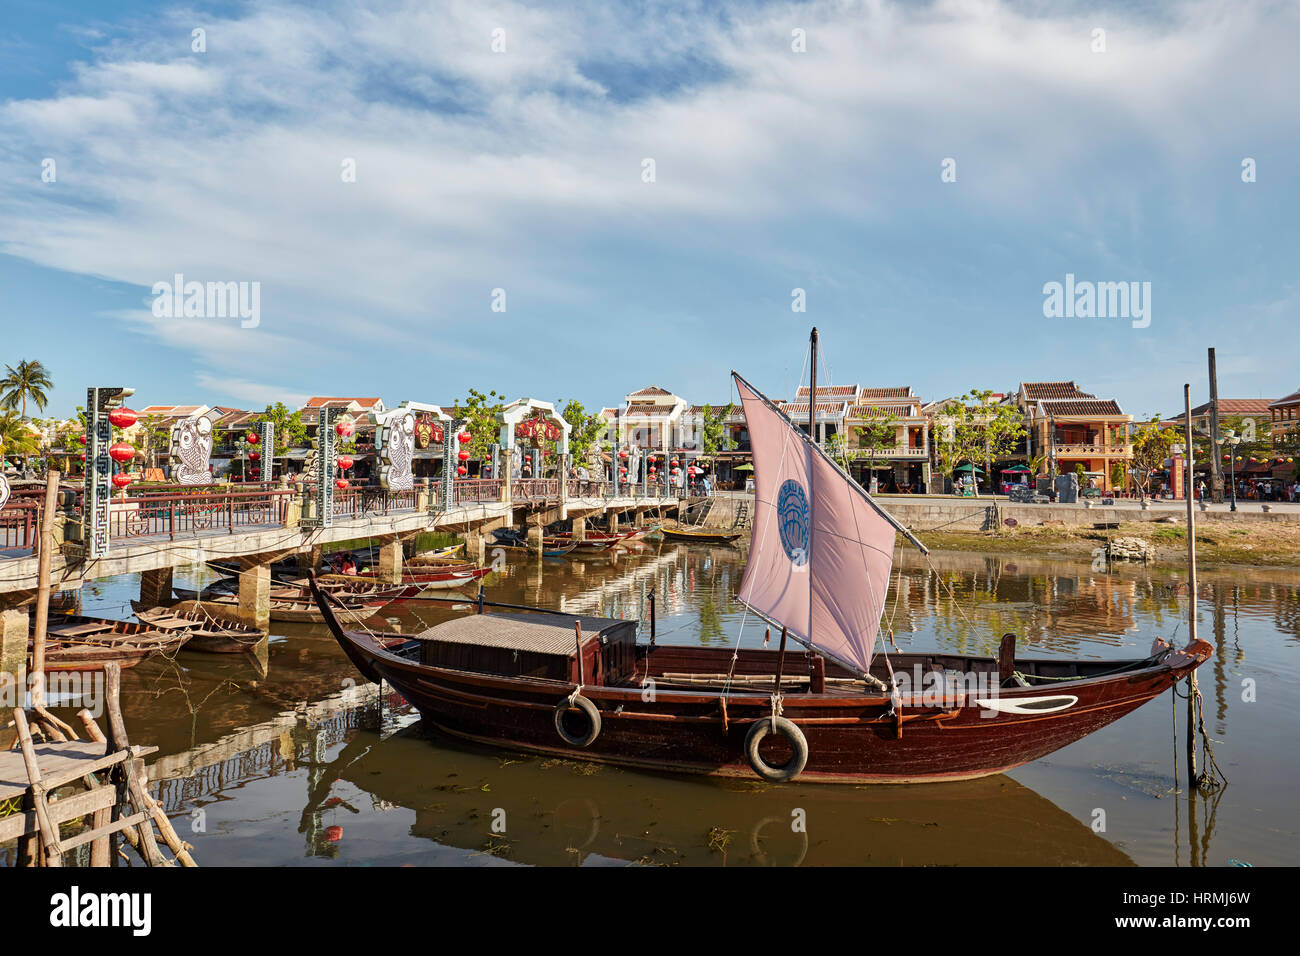 Traditional sail boat on the Thu Bon River. Hoi An Ancient Town, Quang Nam Province, Vietnam. - Stock Image